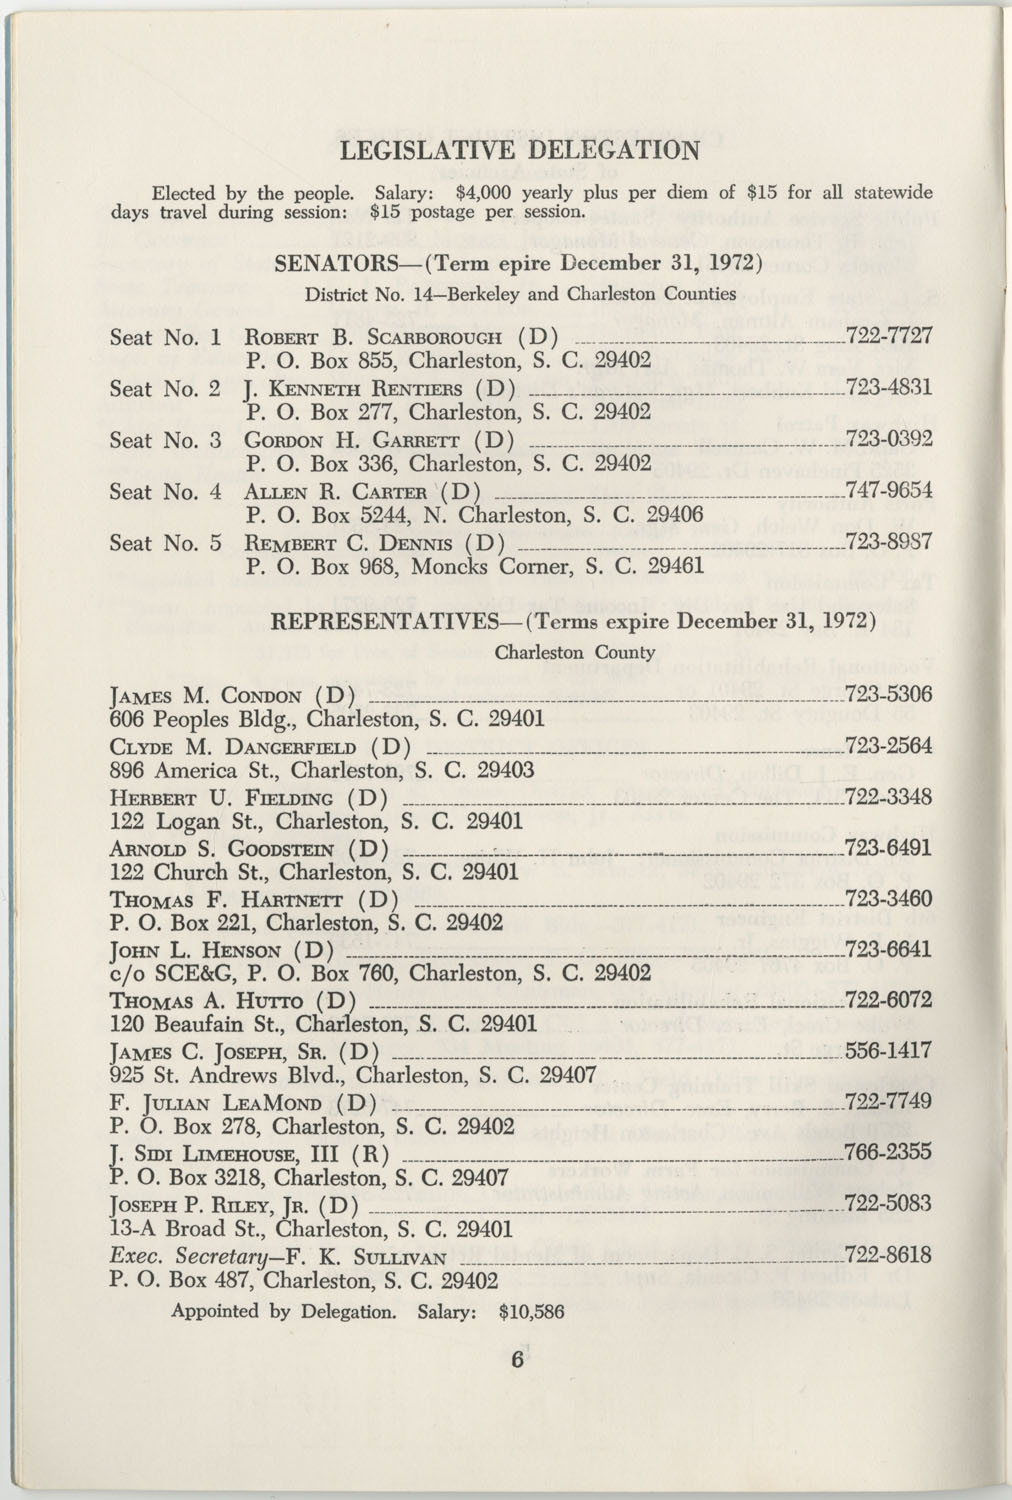 Directory of Public Officials, 1972-1973, Page 6